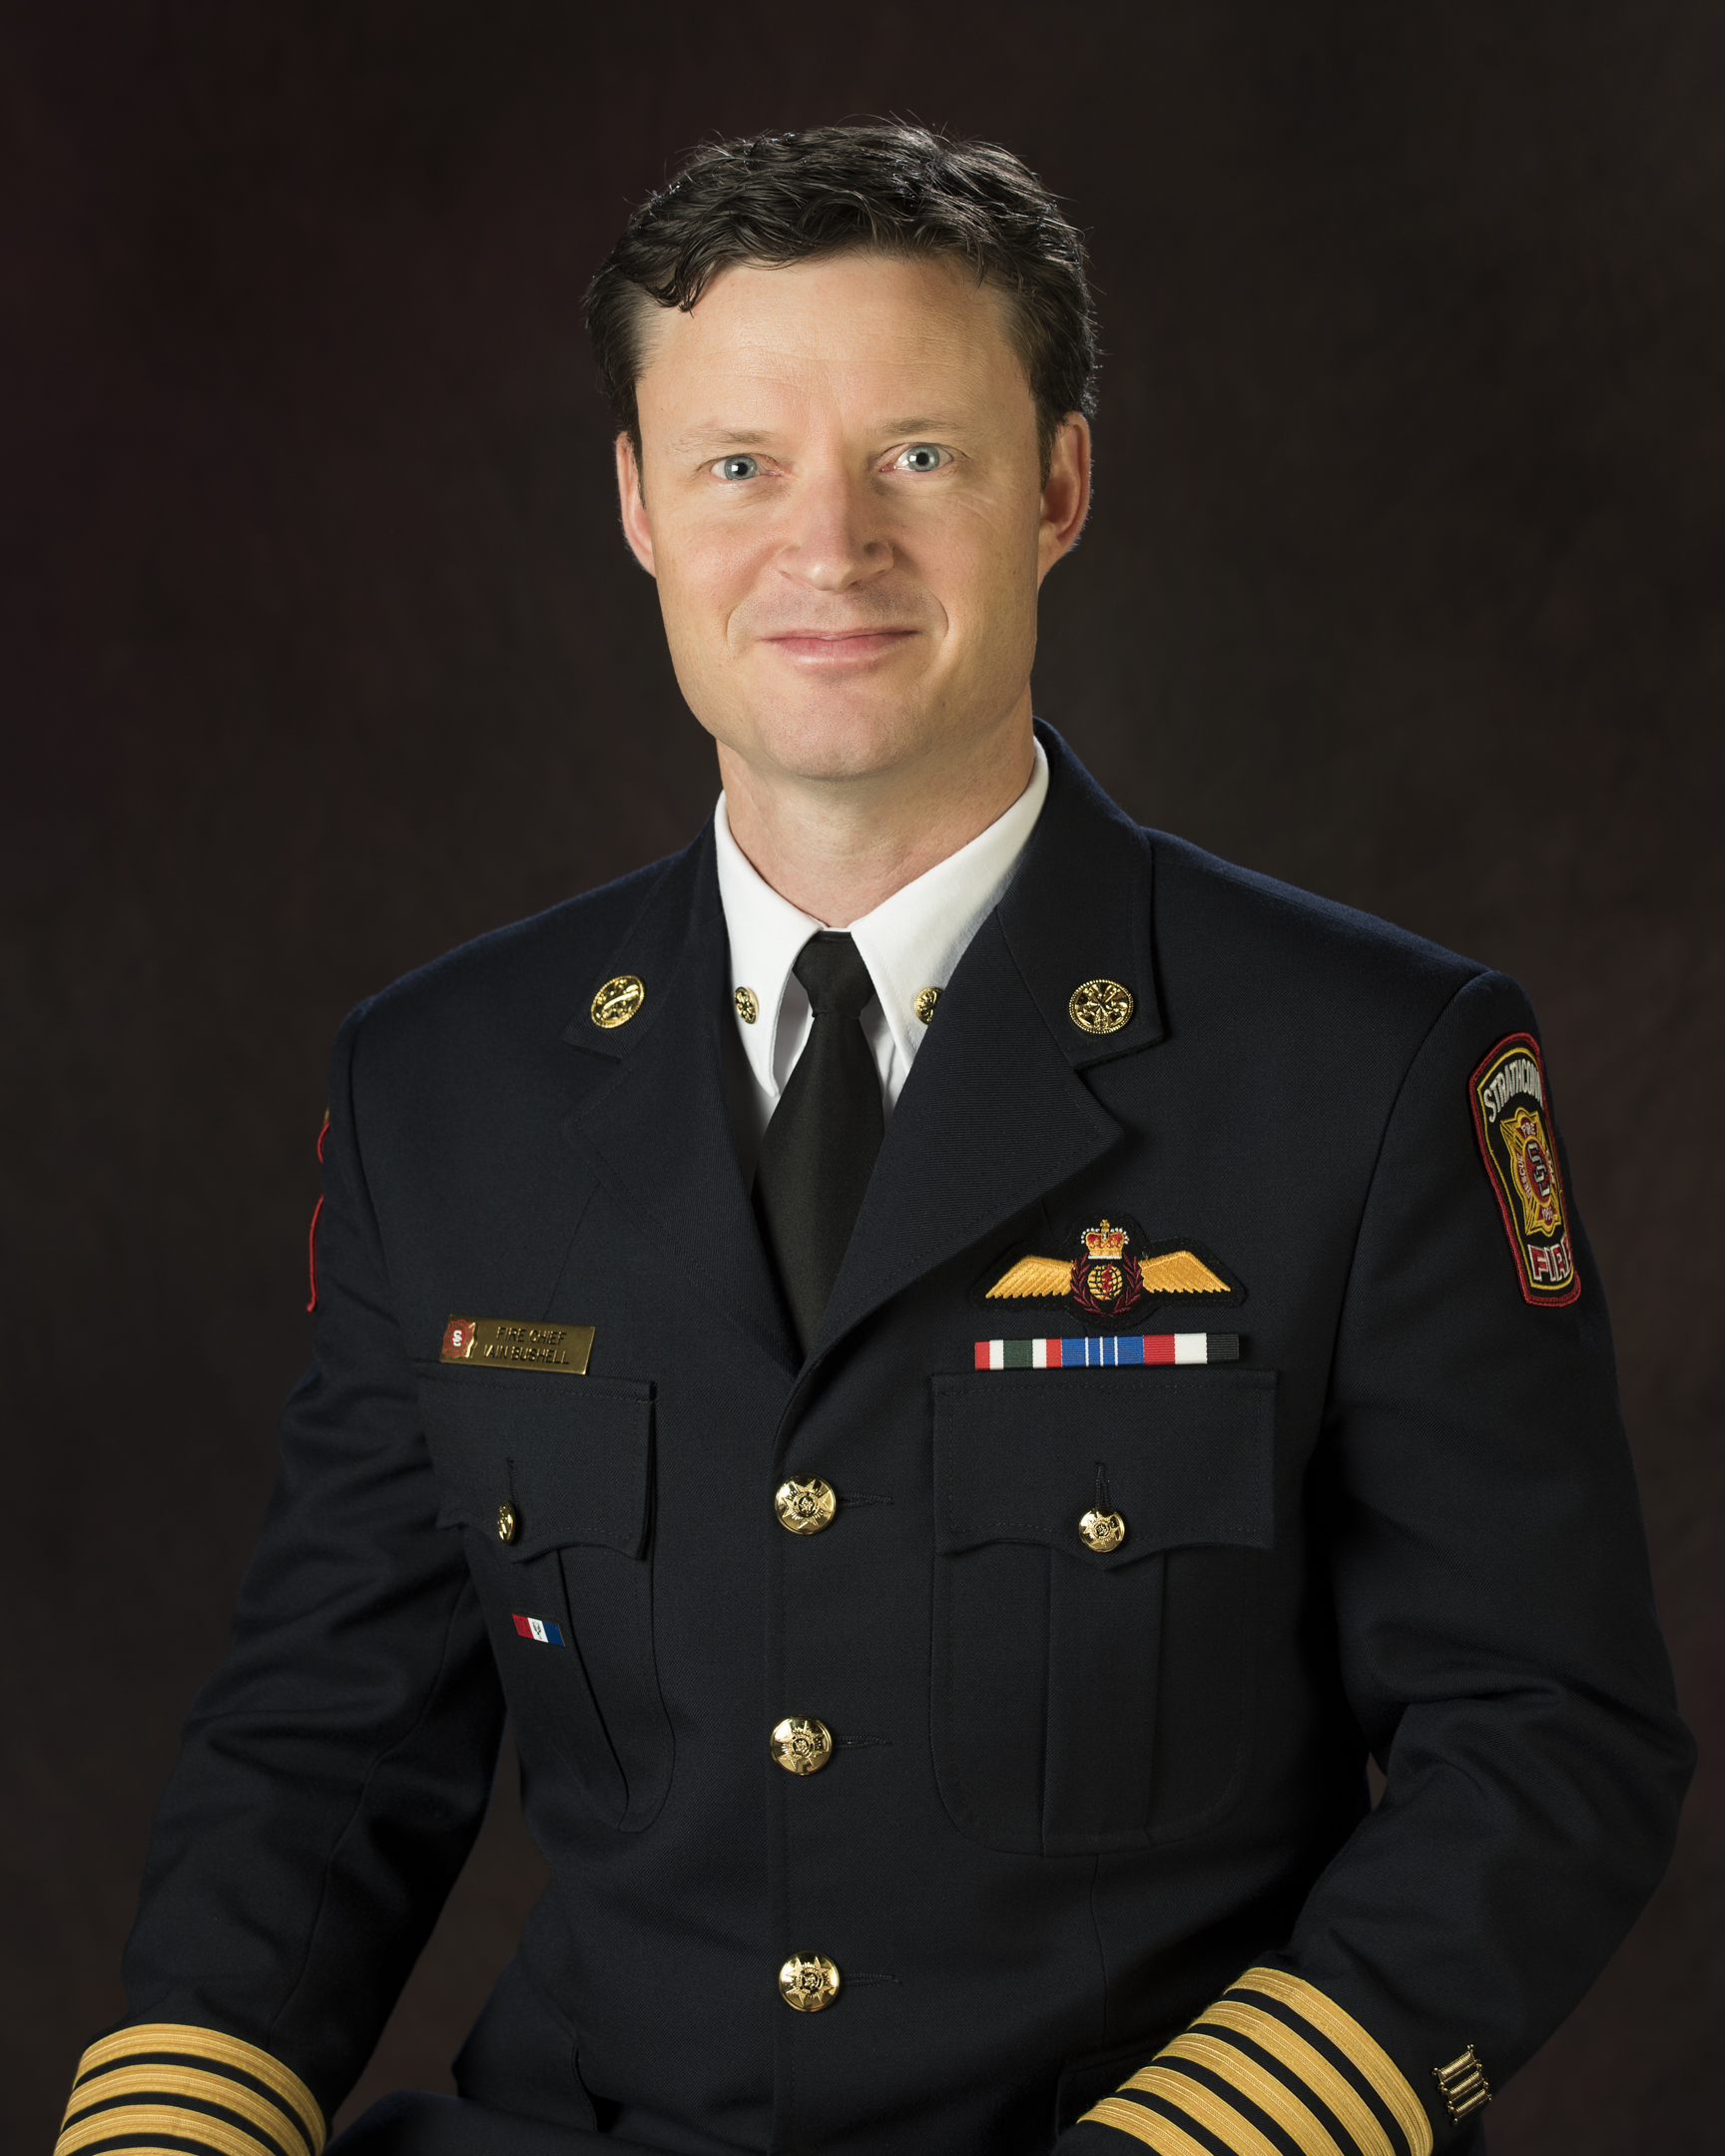 SFRS appoints new Deputy Chief Officer